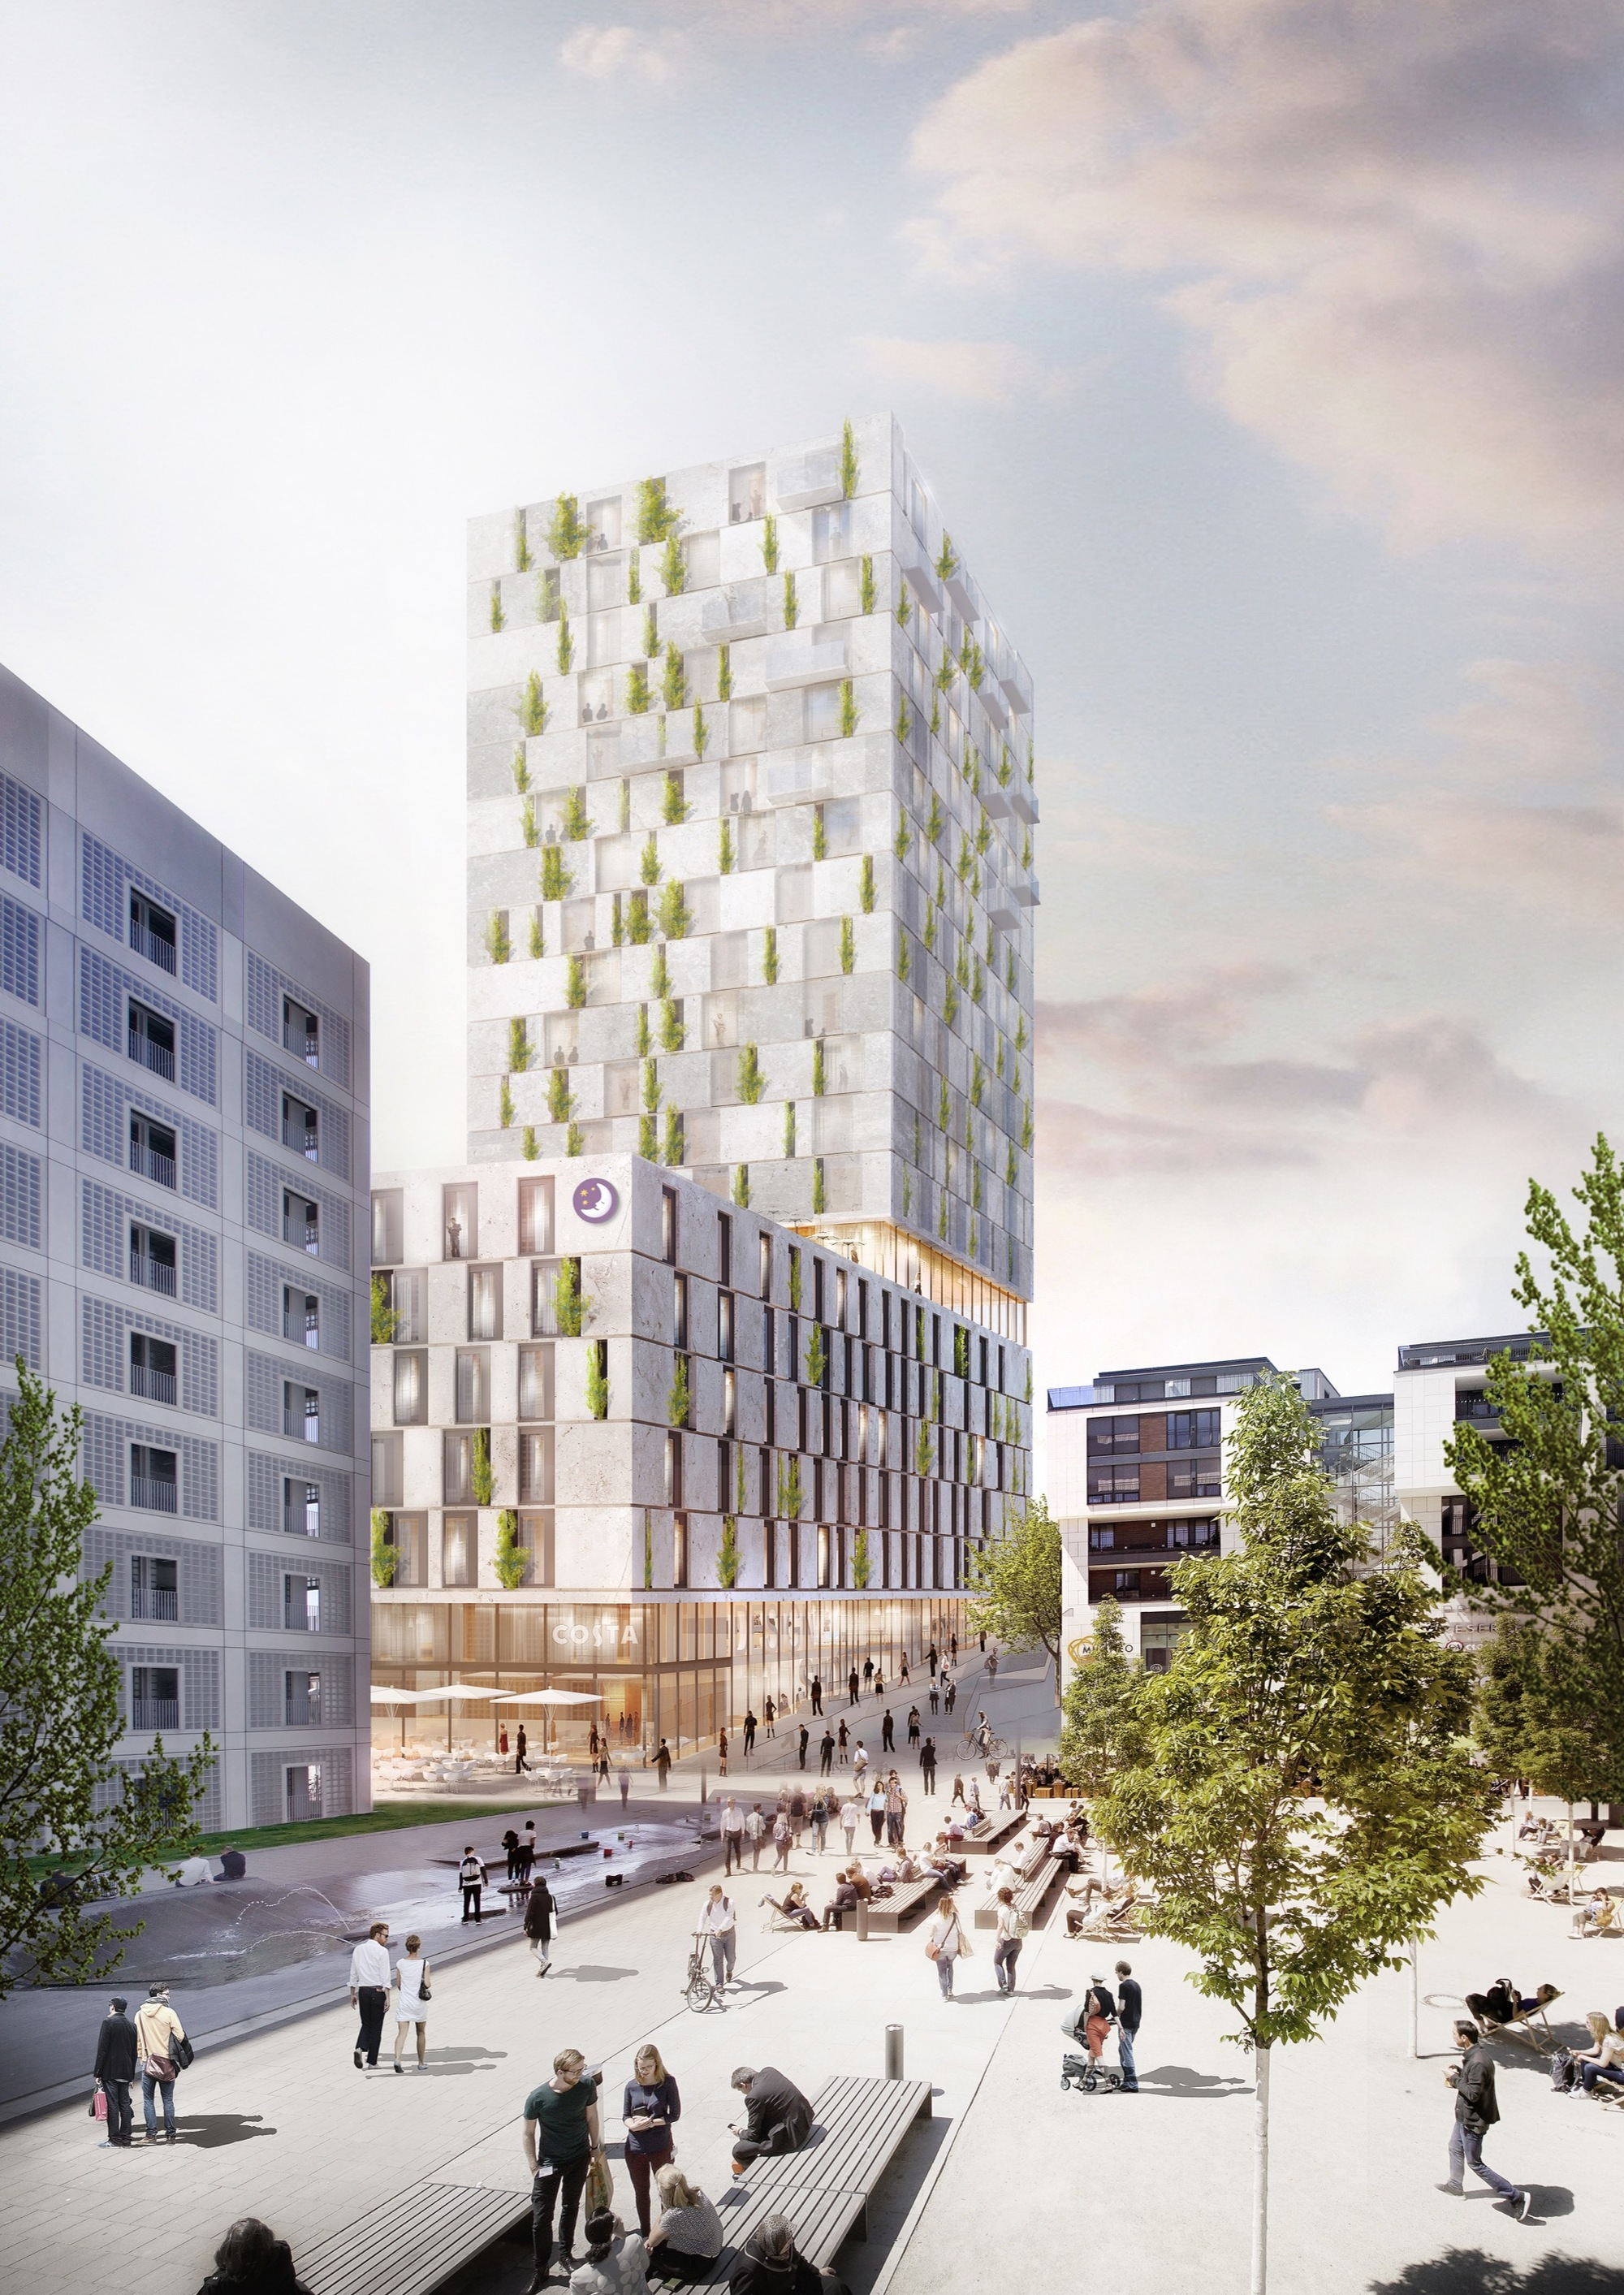 Architektur Rendering Rkw Architektur + Wins Competition For Stone-clad Mixed-use Building In Stuttgart | Archdaily